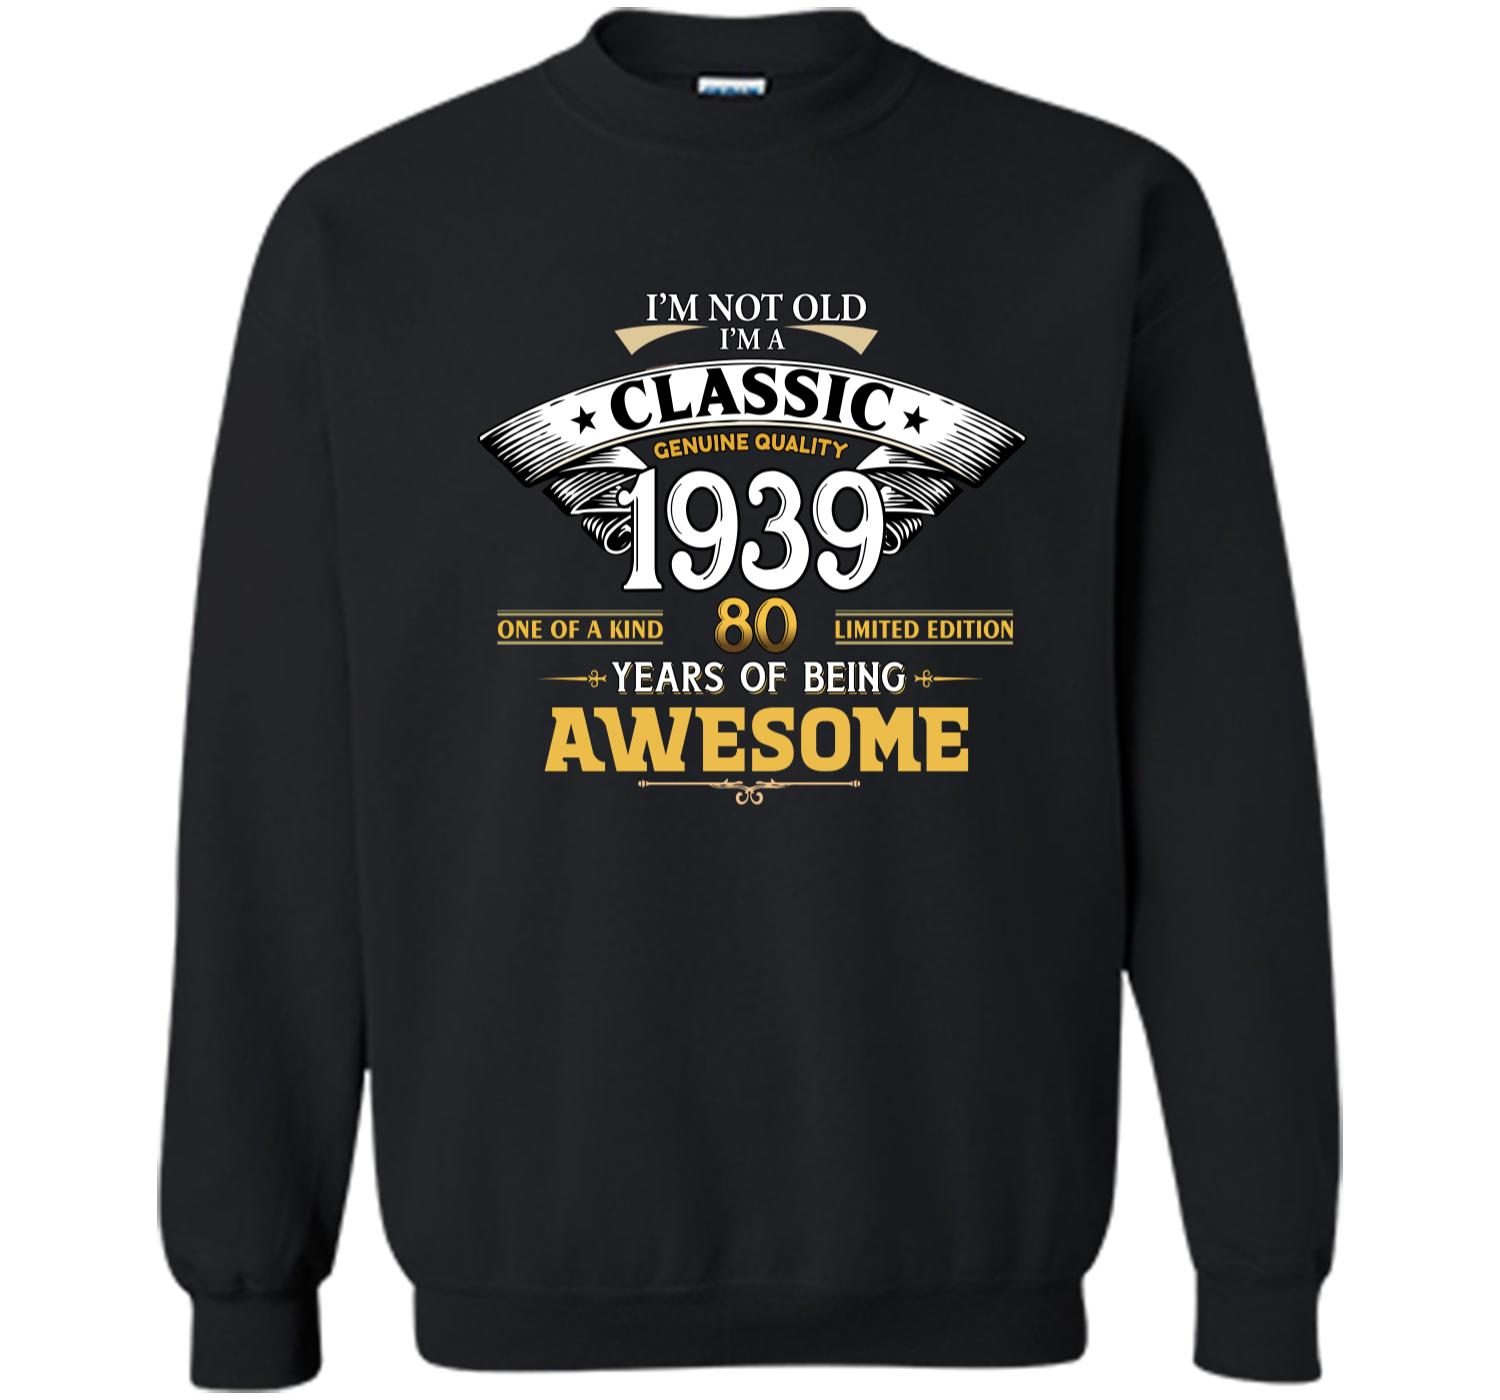 Classic Funny 1939 80th Birthday T Shirts Years Of Awesome Printed Crewneck Pullover Sweatshirt 8